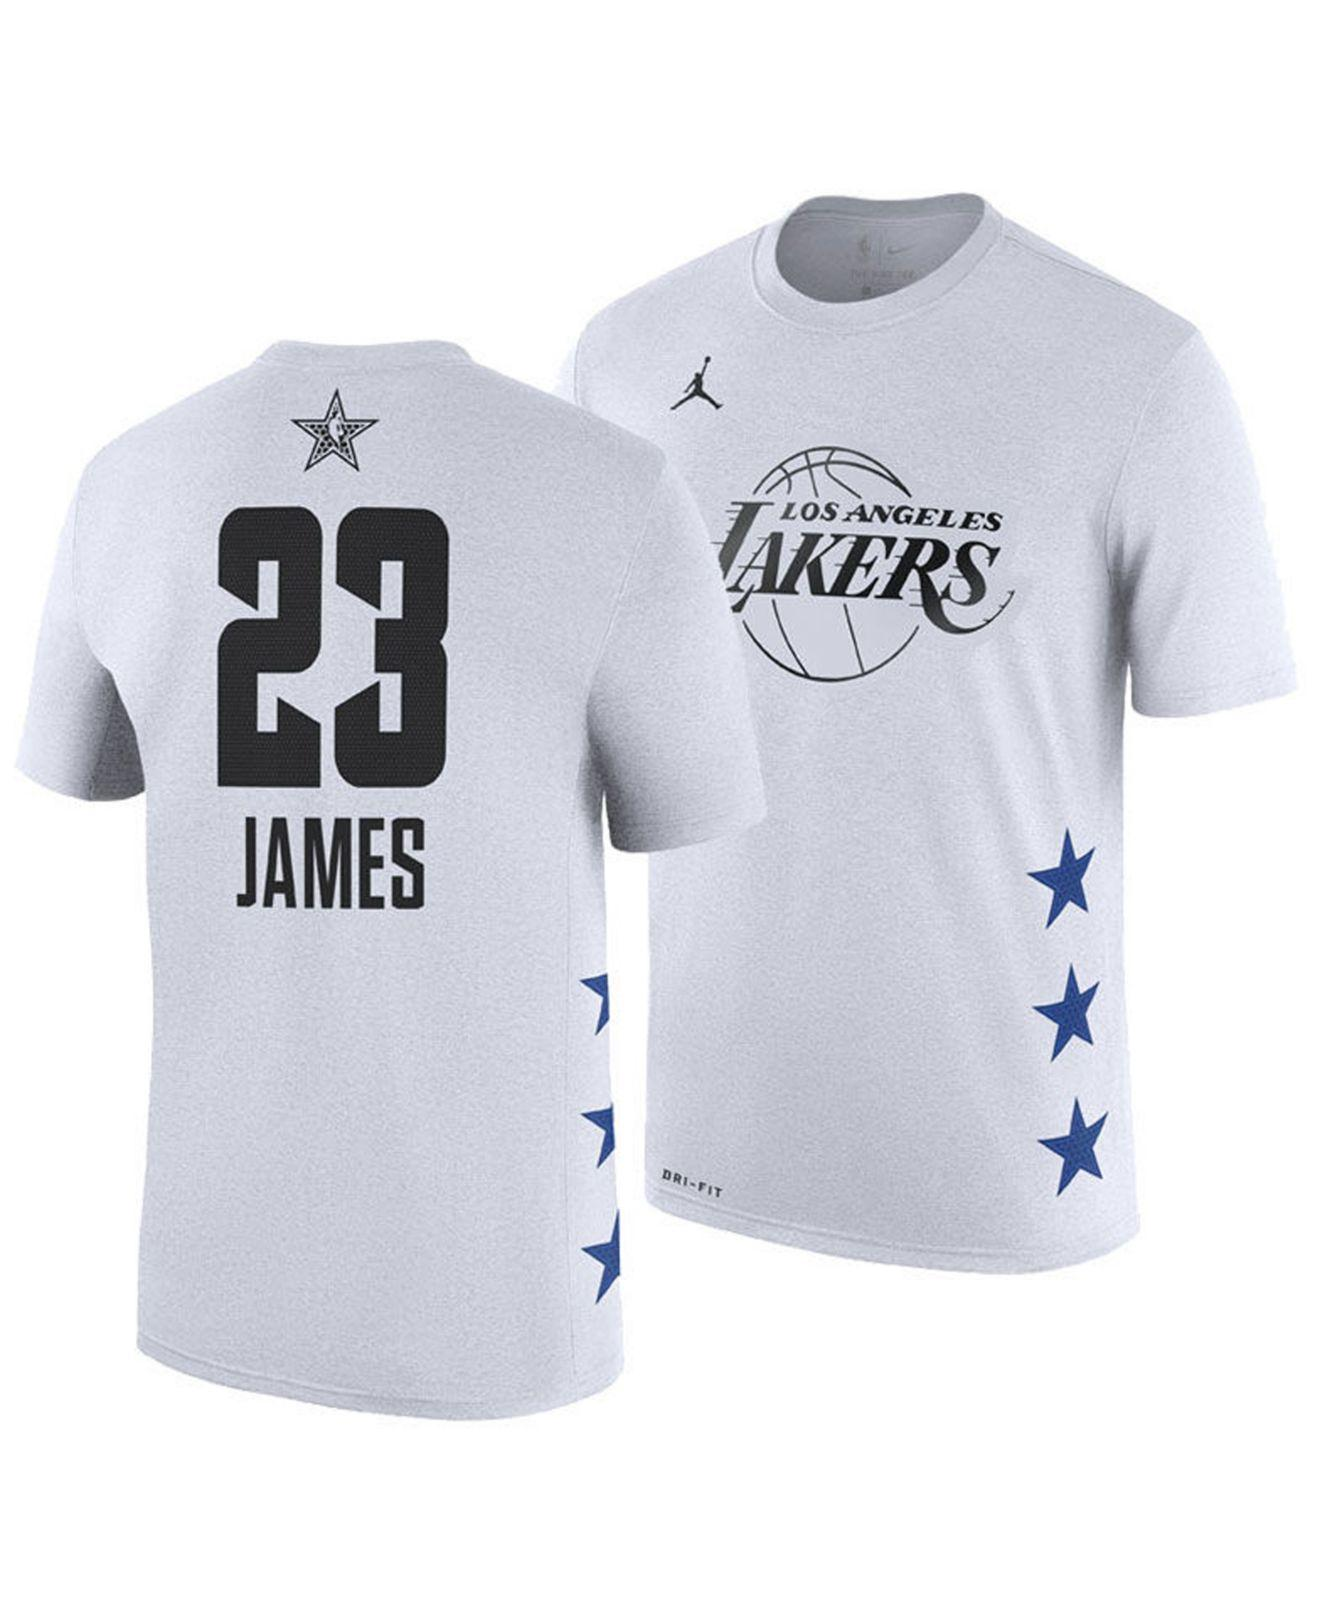 11b917ca98a Nike Lebron James Los Angeles Lakers All-star Player T-shirt in ...